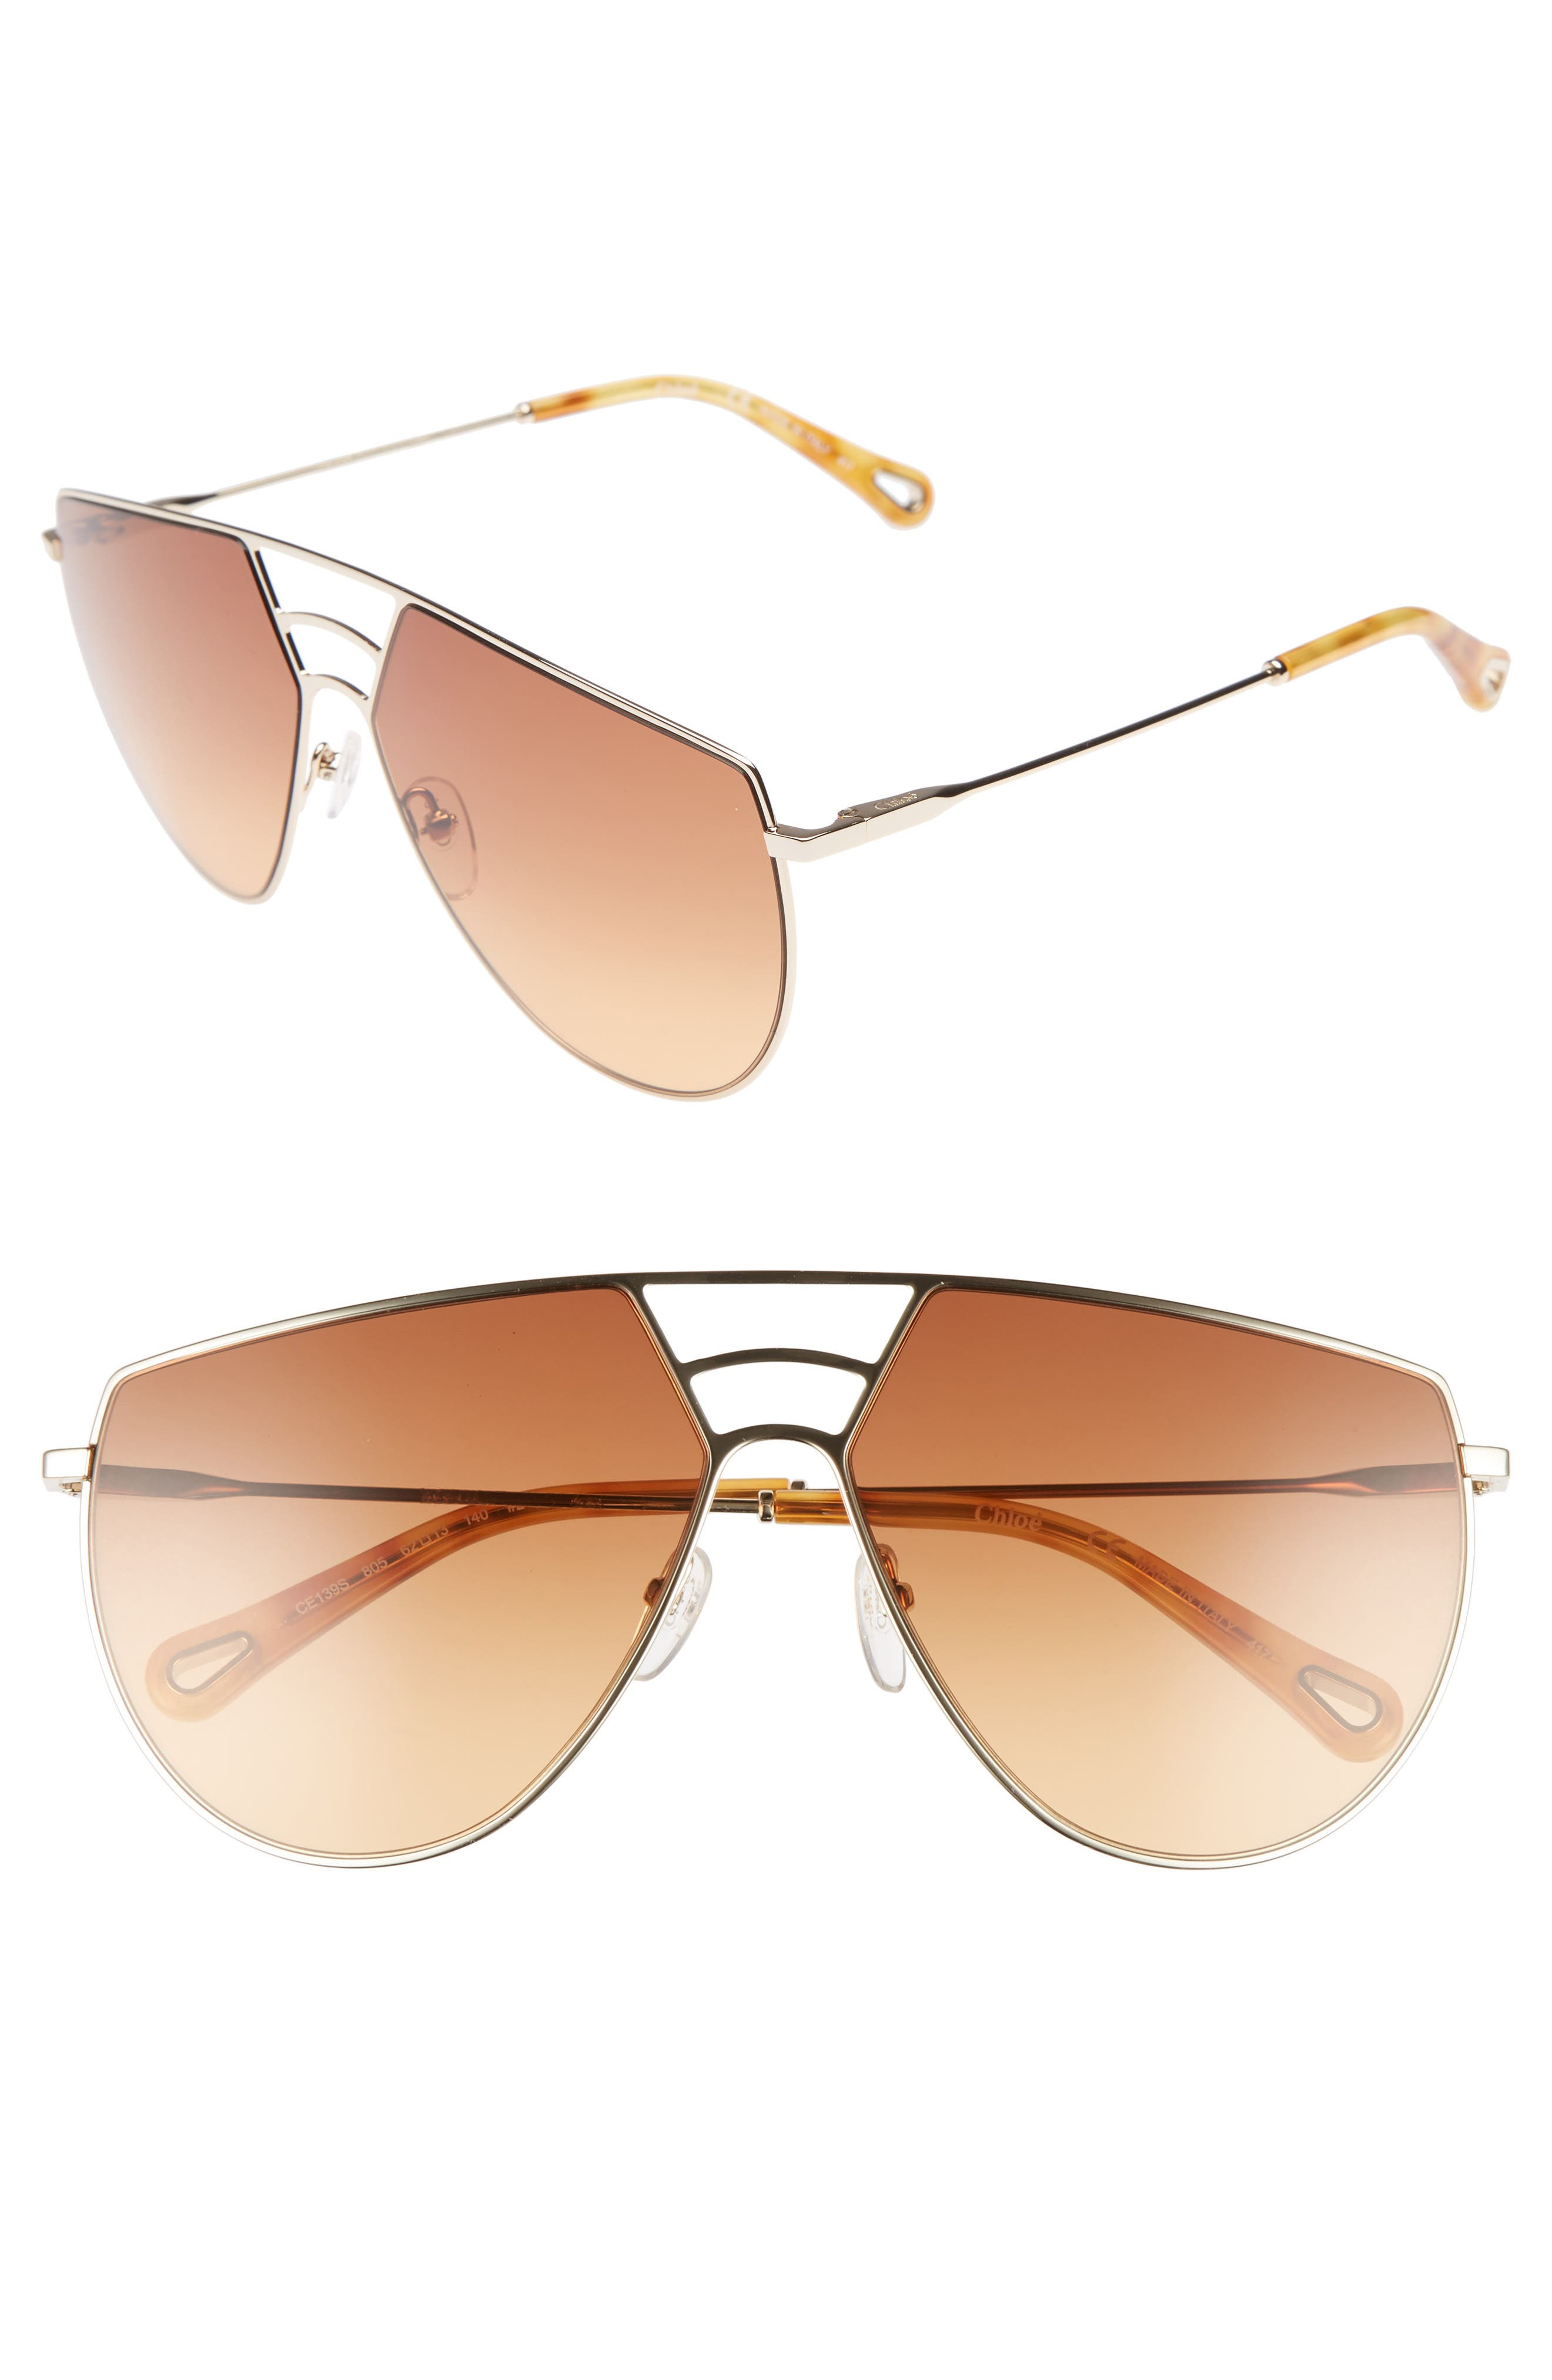 Negative Space 62mm Oversize Aviator Sunglasses,                         Main,                         color, Gold/ Burnt